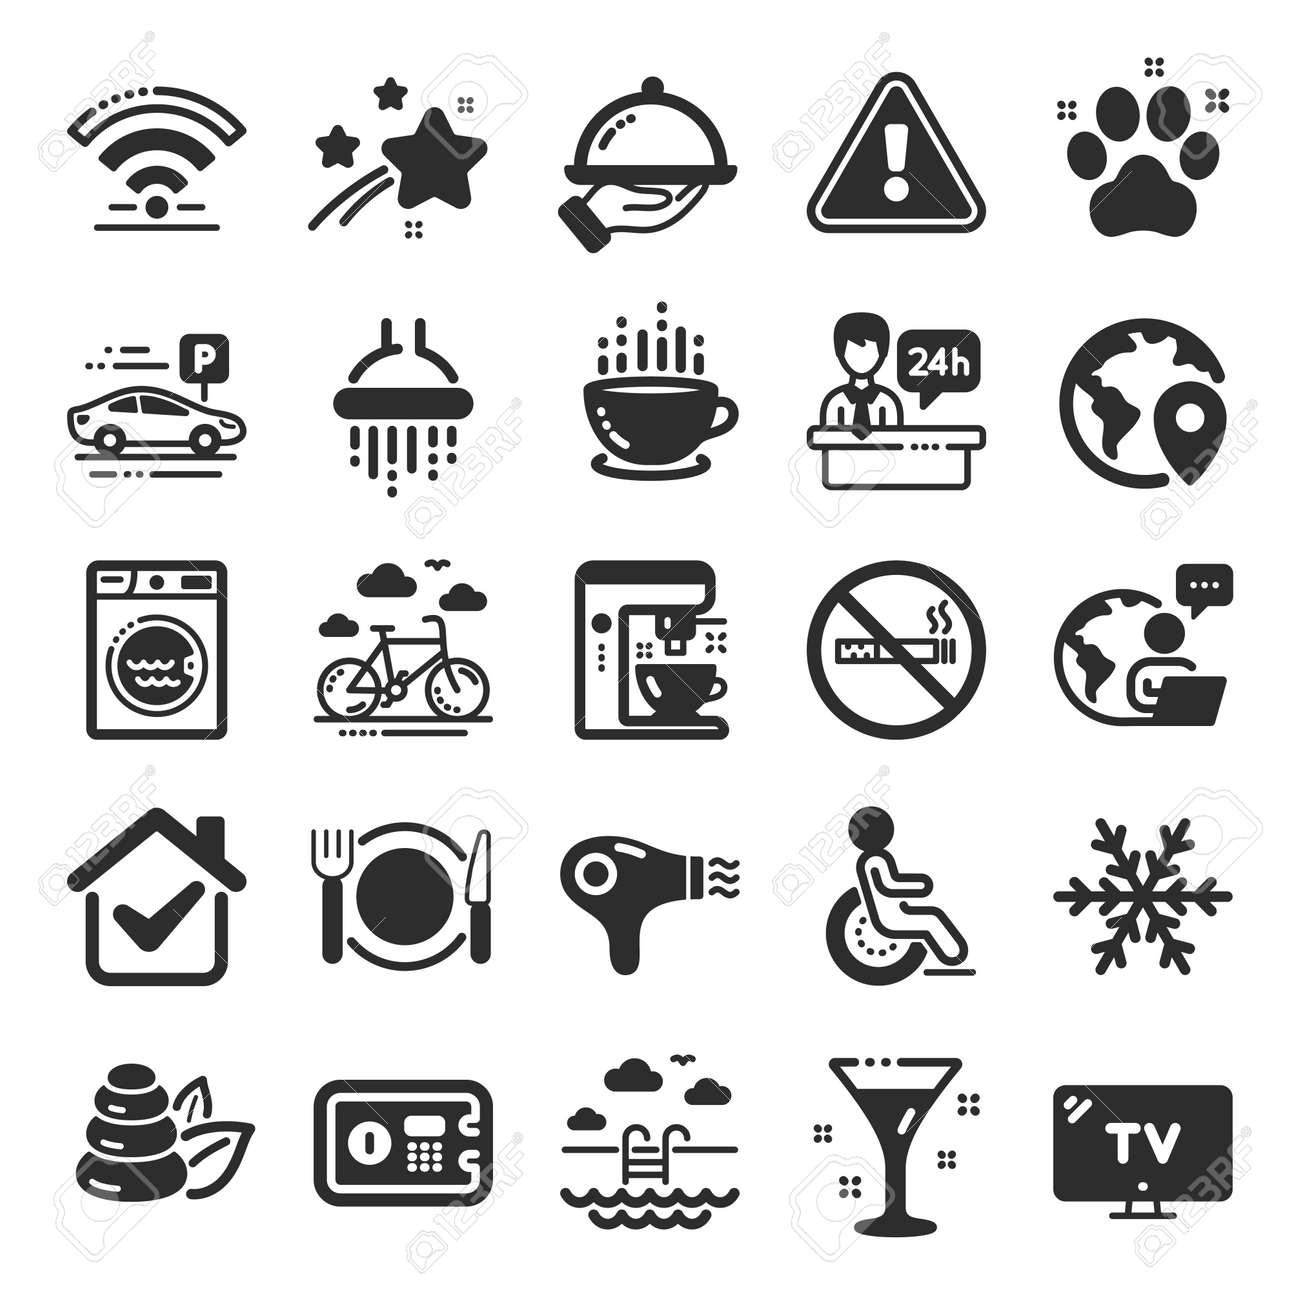 Hotel service icons. WiFi, Air conditioning and Coffee maker machine. Spa stones, swimming pool and bike rental icons. Hotel parking, safe and shower. Food, coffee cup. Flat icon set. Vector - 159838533